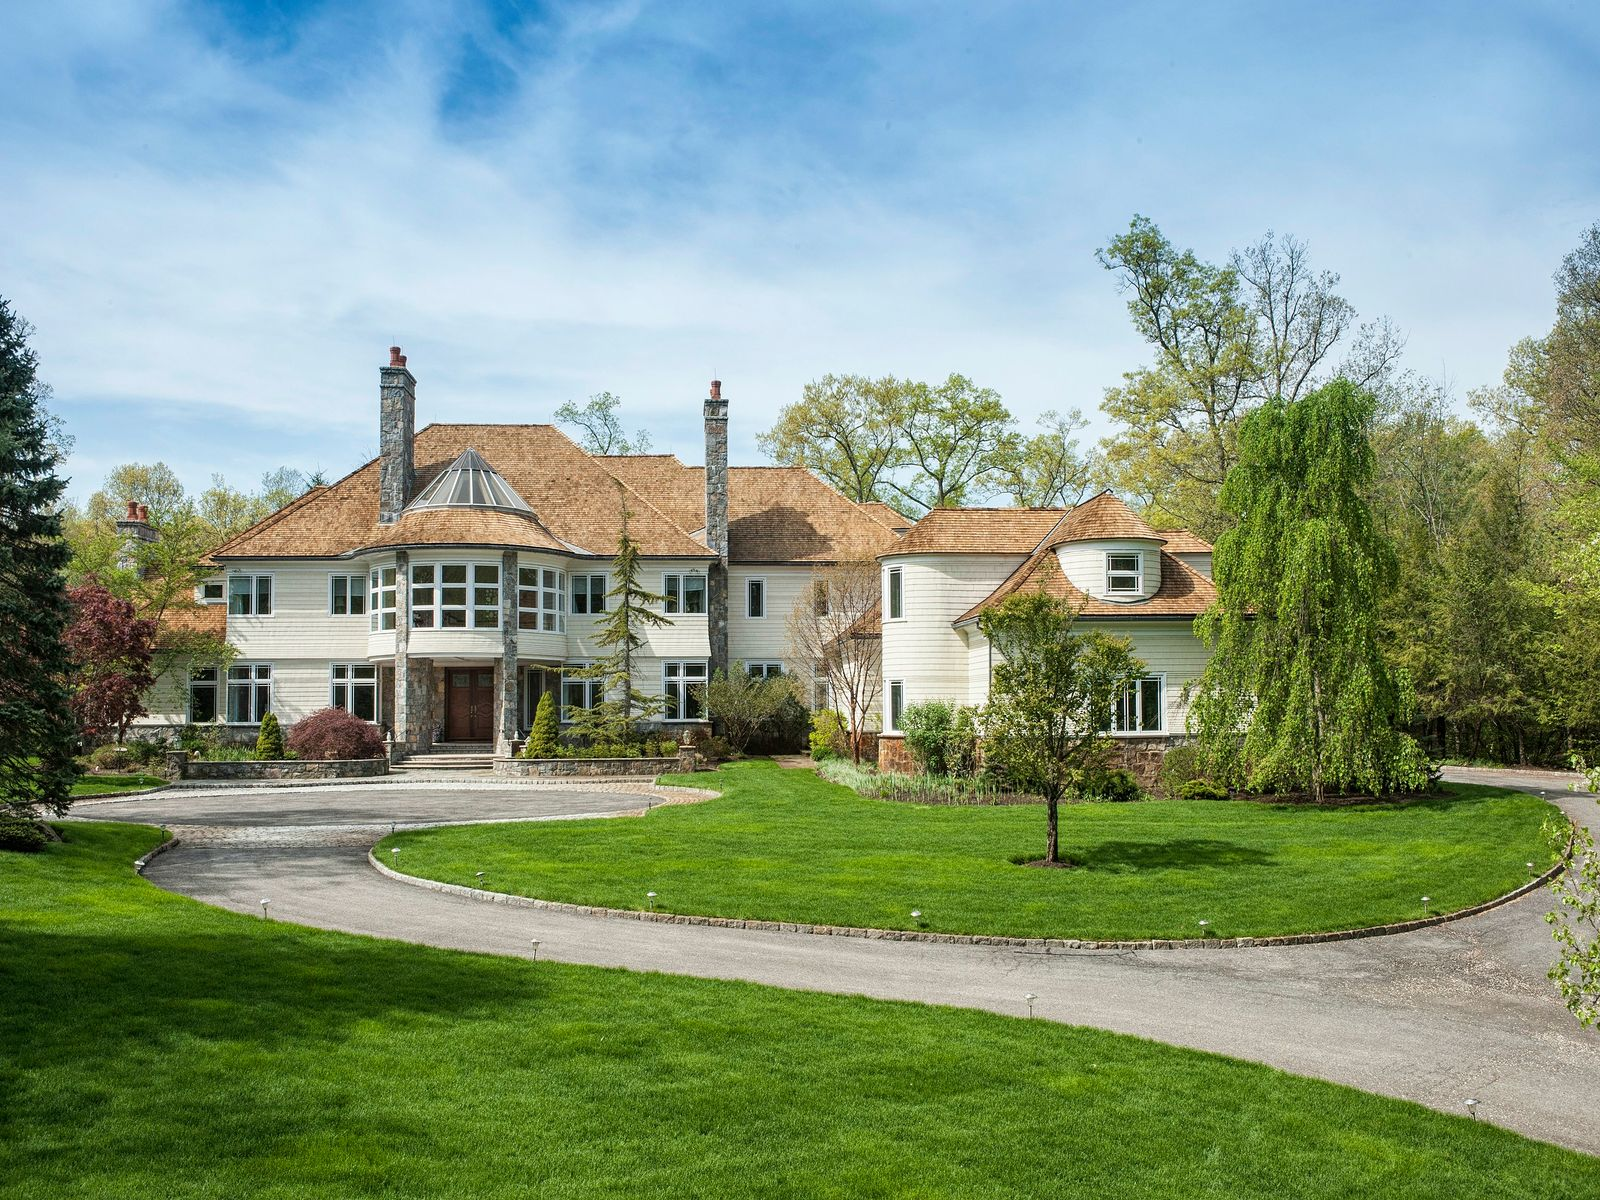 Beautiful Backcountry Retreat, Greenwich CT Single Family Home - Greenwich Real Estate